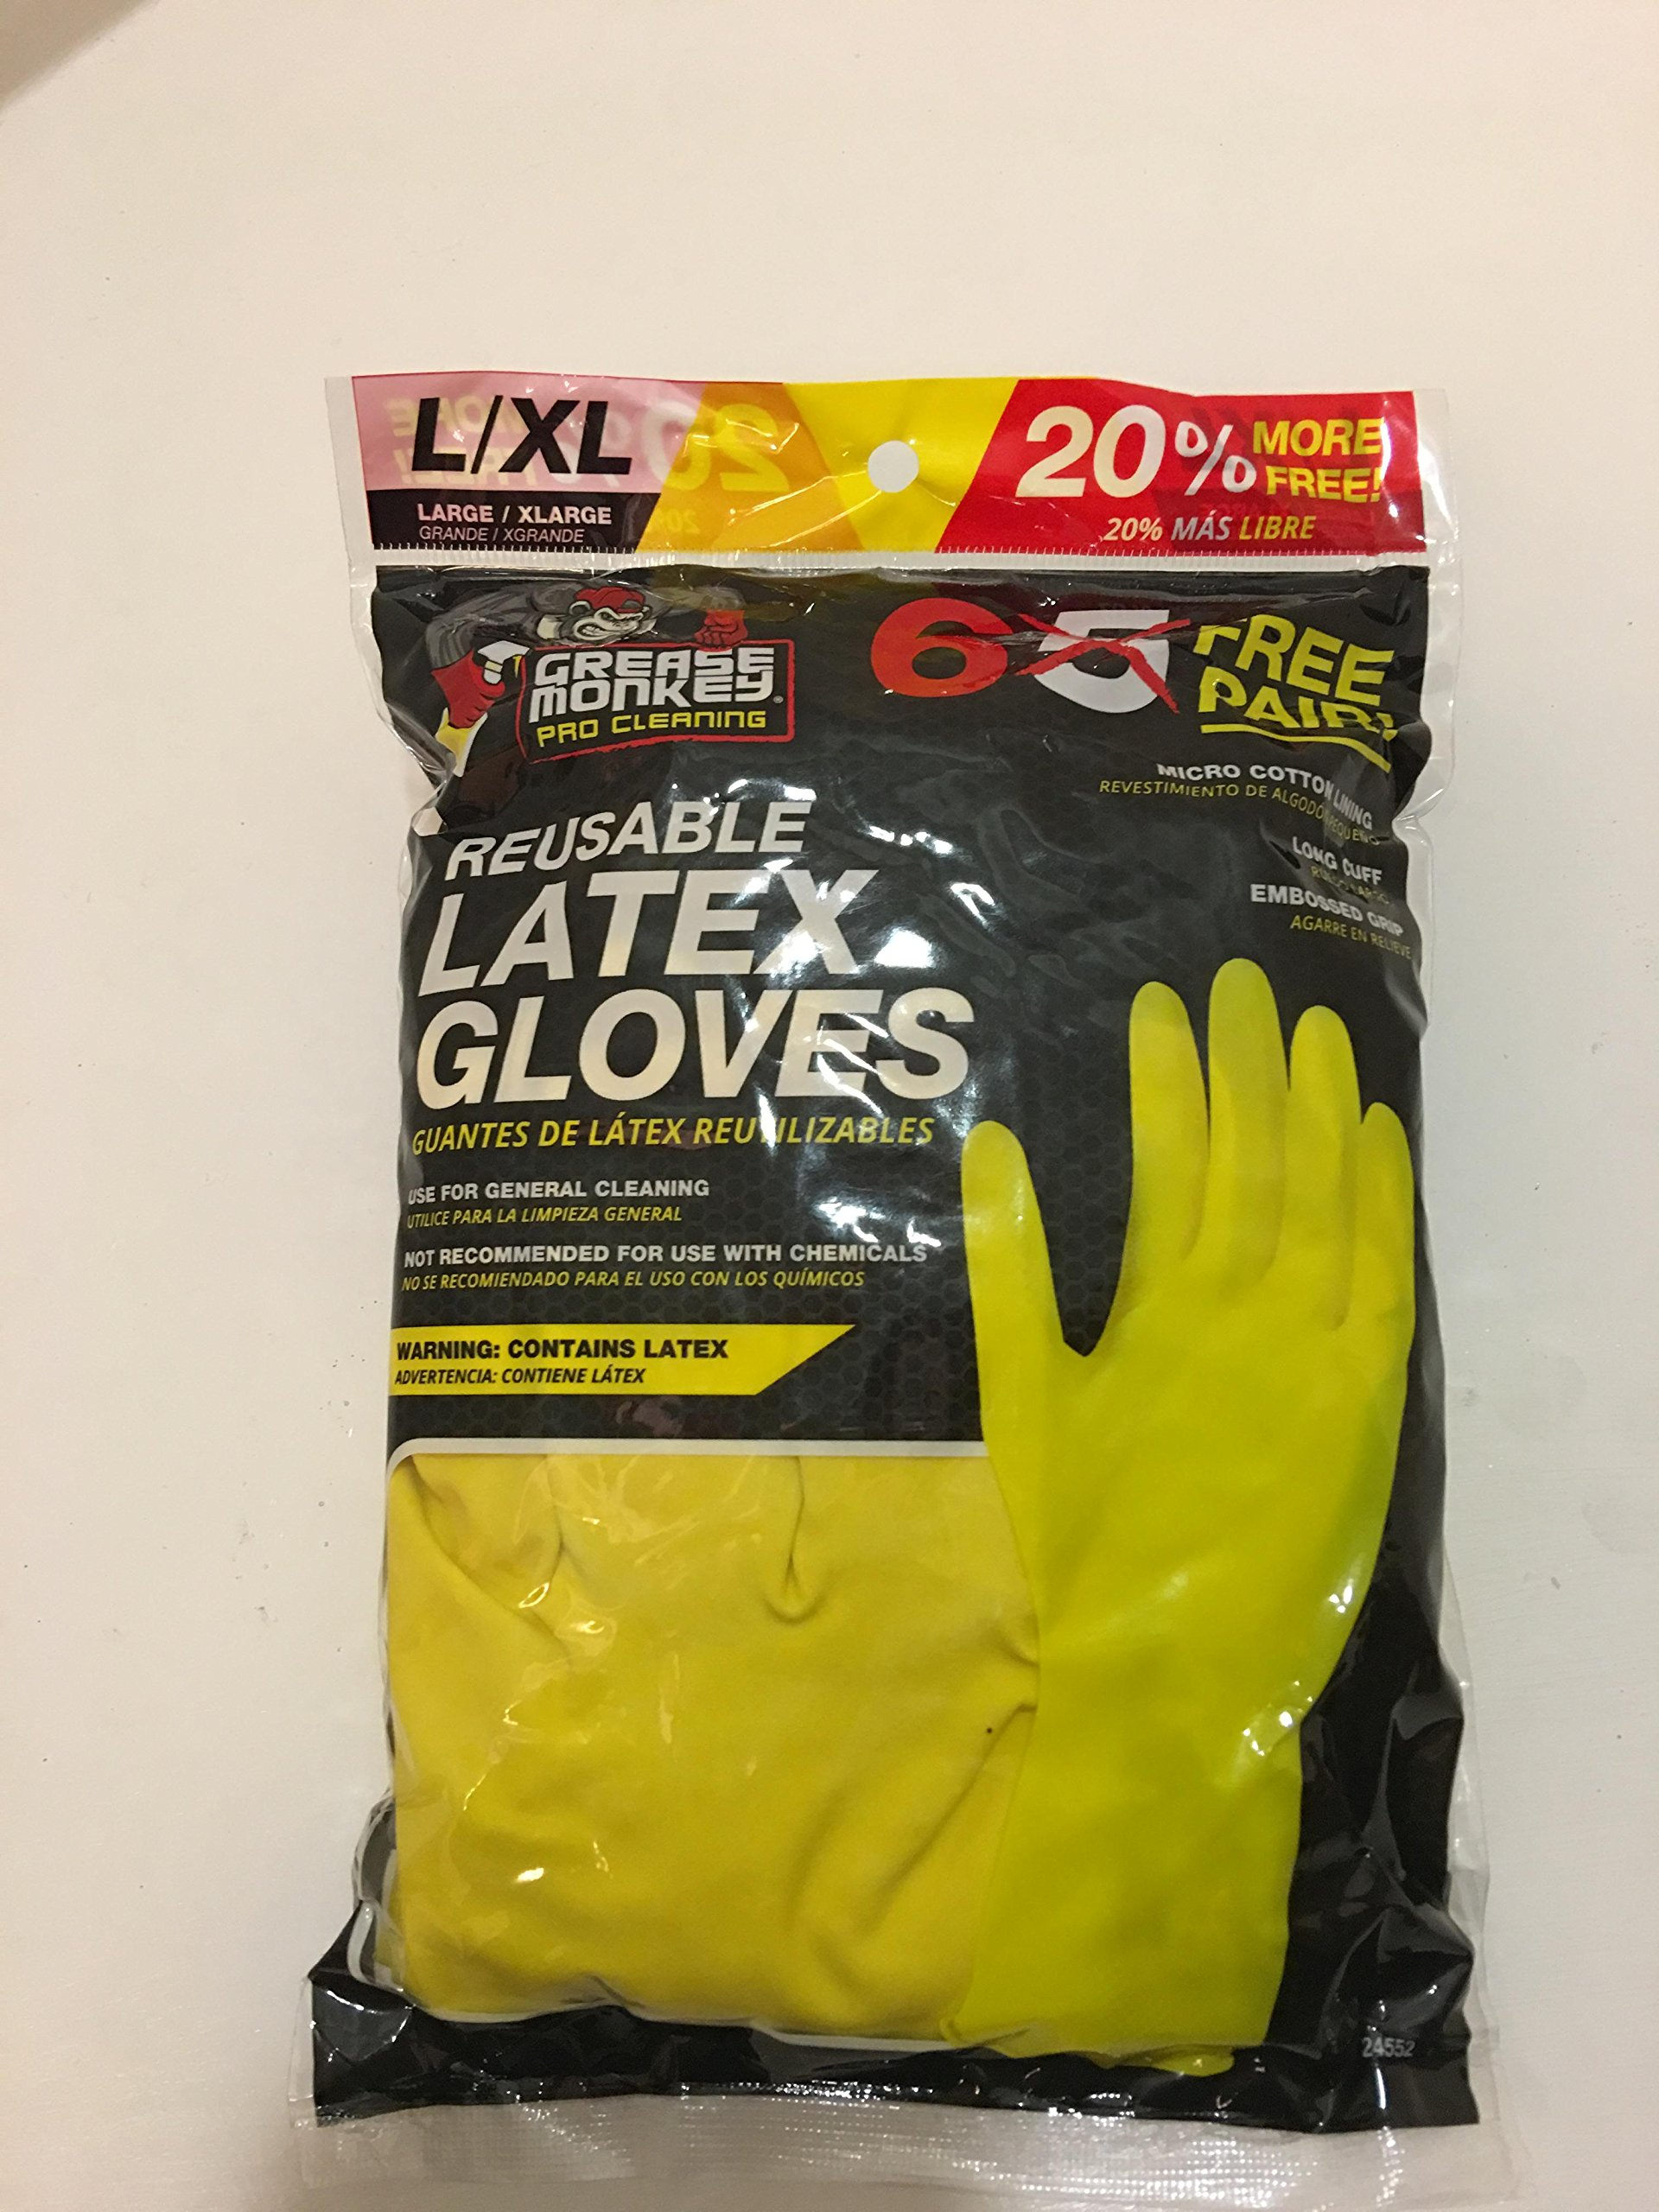 Professional Cleaning Reusable Latex Gloves 6 Pair (Yellow, large)